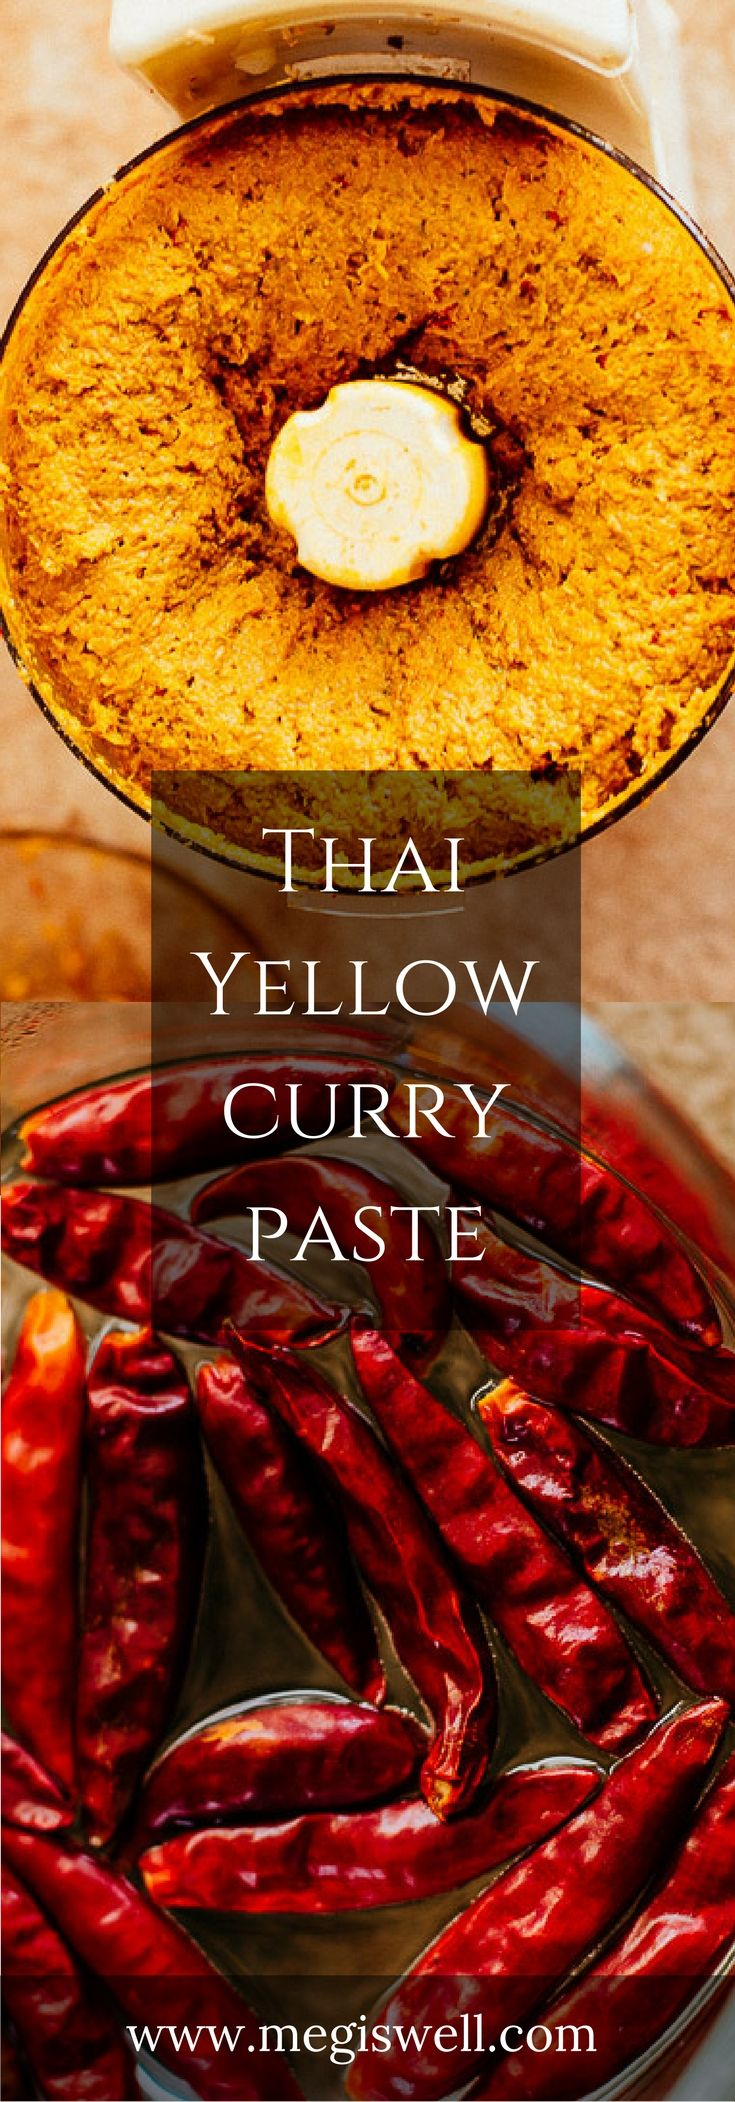 Although making your own Thai Yellow Curry Paste from scratch seems intimidating, this recipe breaks it down into manageable steps. You'll never have to buy store bought curry paste again and the effort is well worth the rewards. | www.megiswell.com